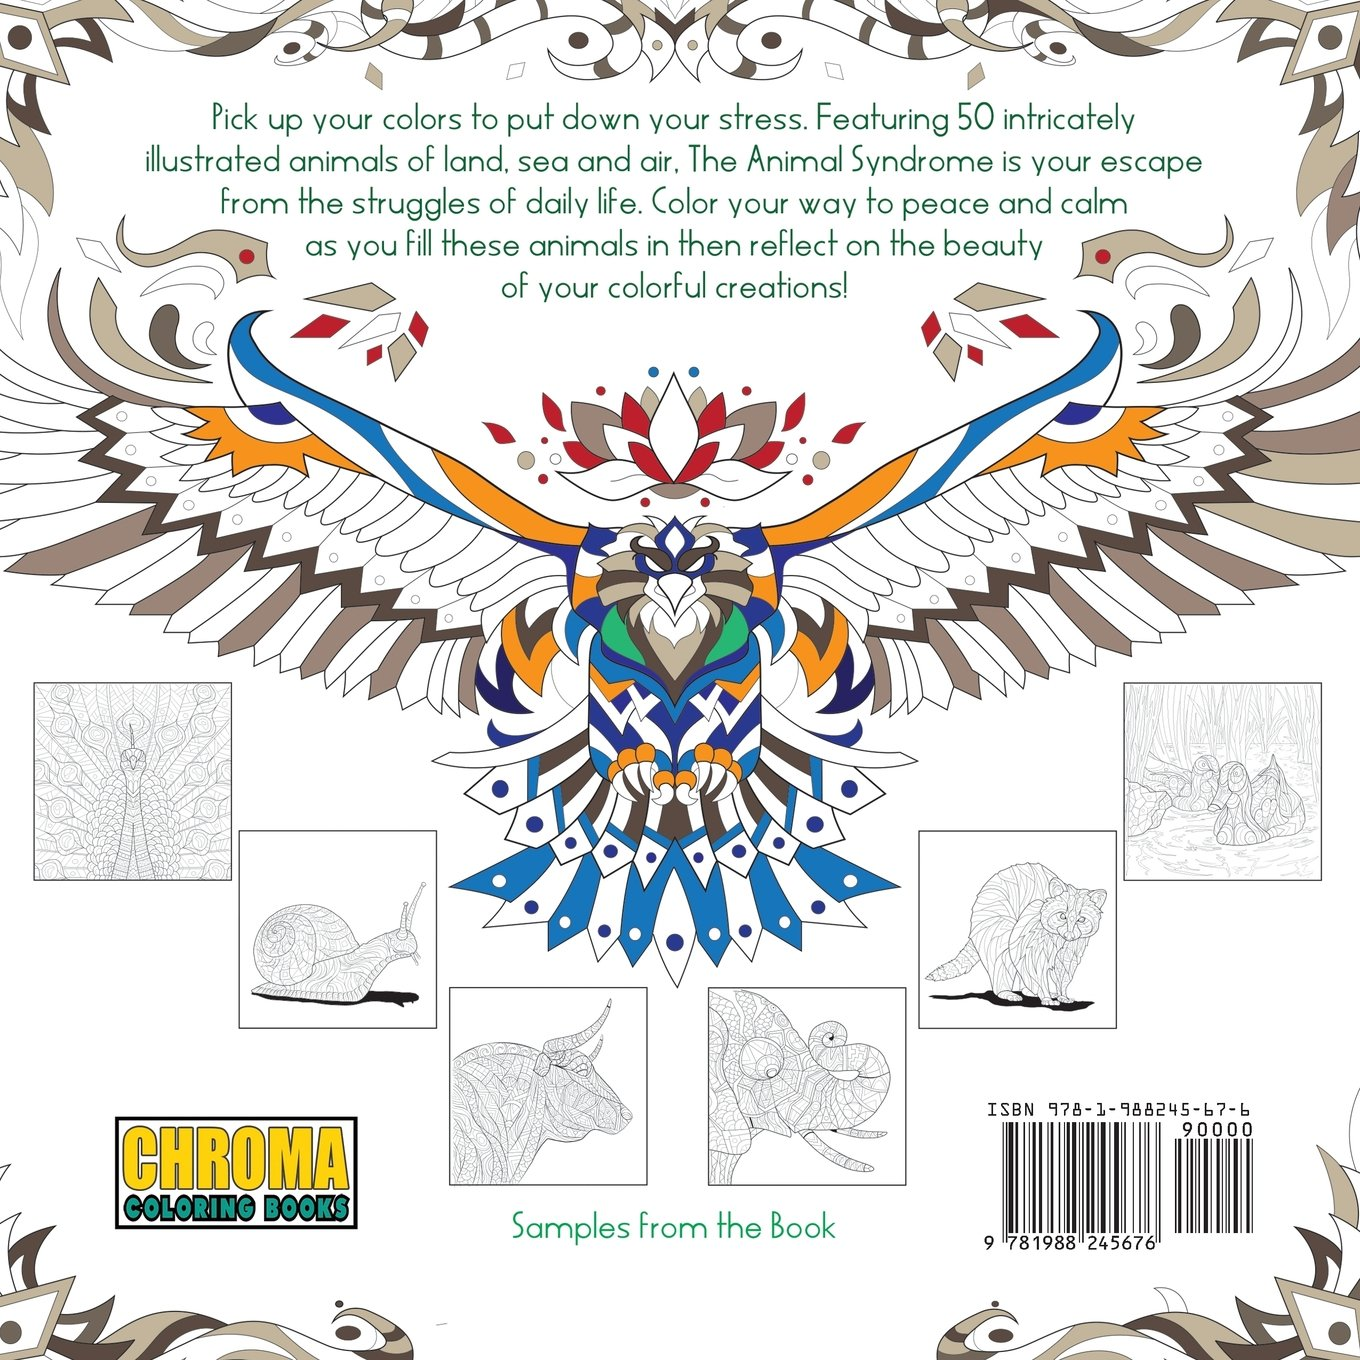 Oliver Hellowell Amazoncom The Animal Syndrome Melange Of 50 Animals Graphics For Adults To Color Animal Coloring Book For Adults 85 85 Amazoncom Amazoncom The Animal Syndrome Melange Of 50 Animals Graphics